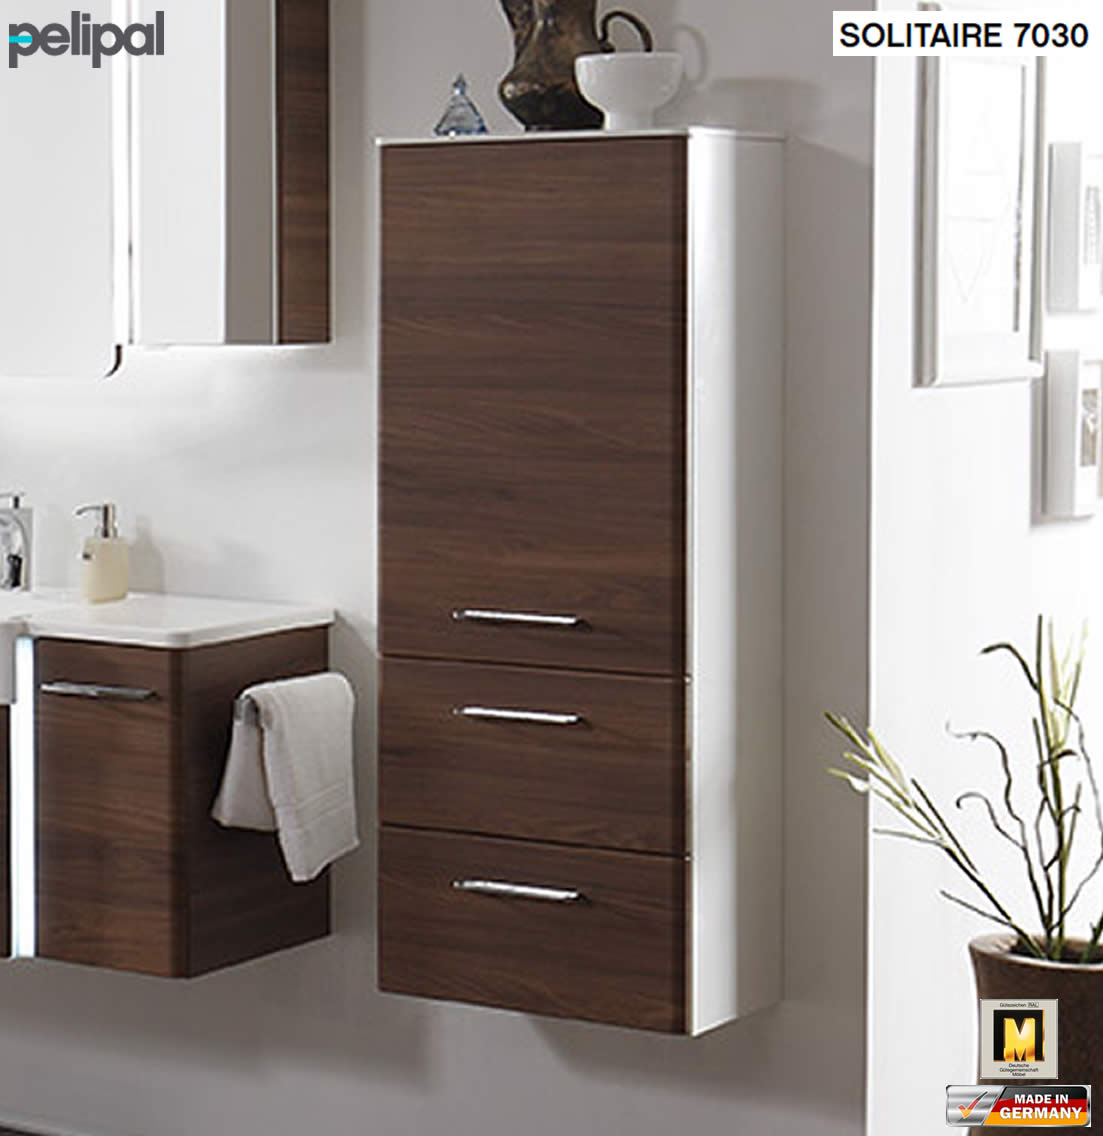 pelipal solitaire 7030 midischrank 45 cm breite mit 1 t r 2 ausz gen impuls home. Black Bedroom Furniture Sets. Home Design Ideas